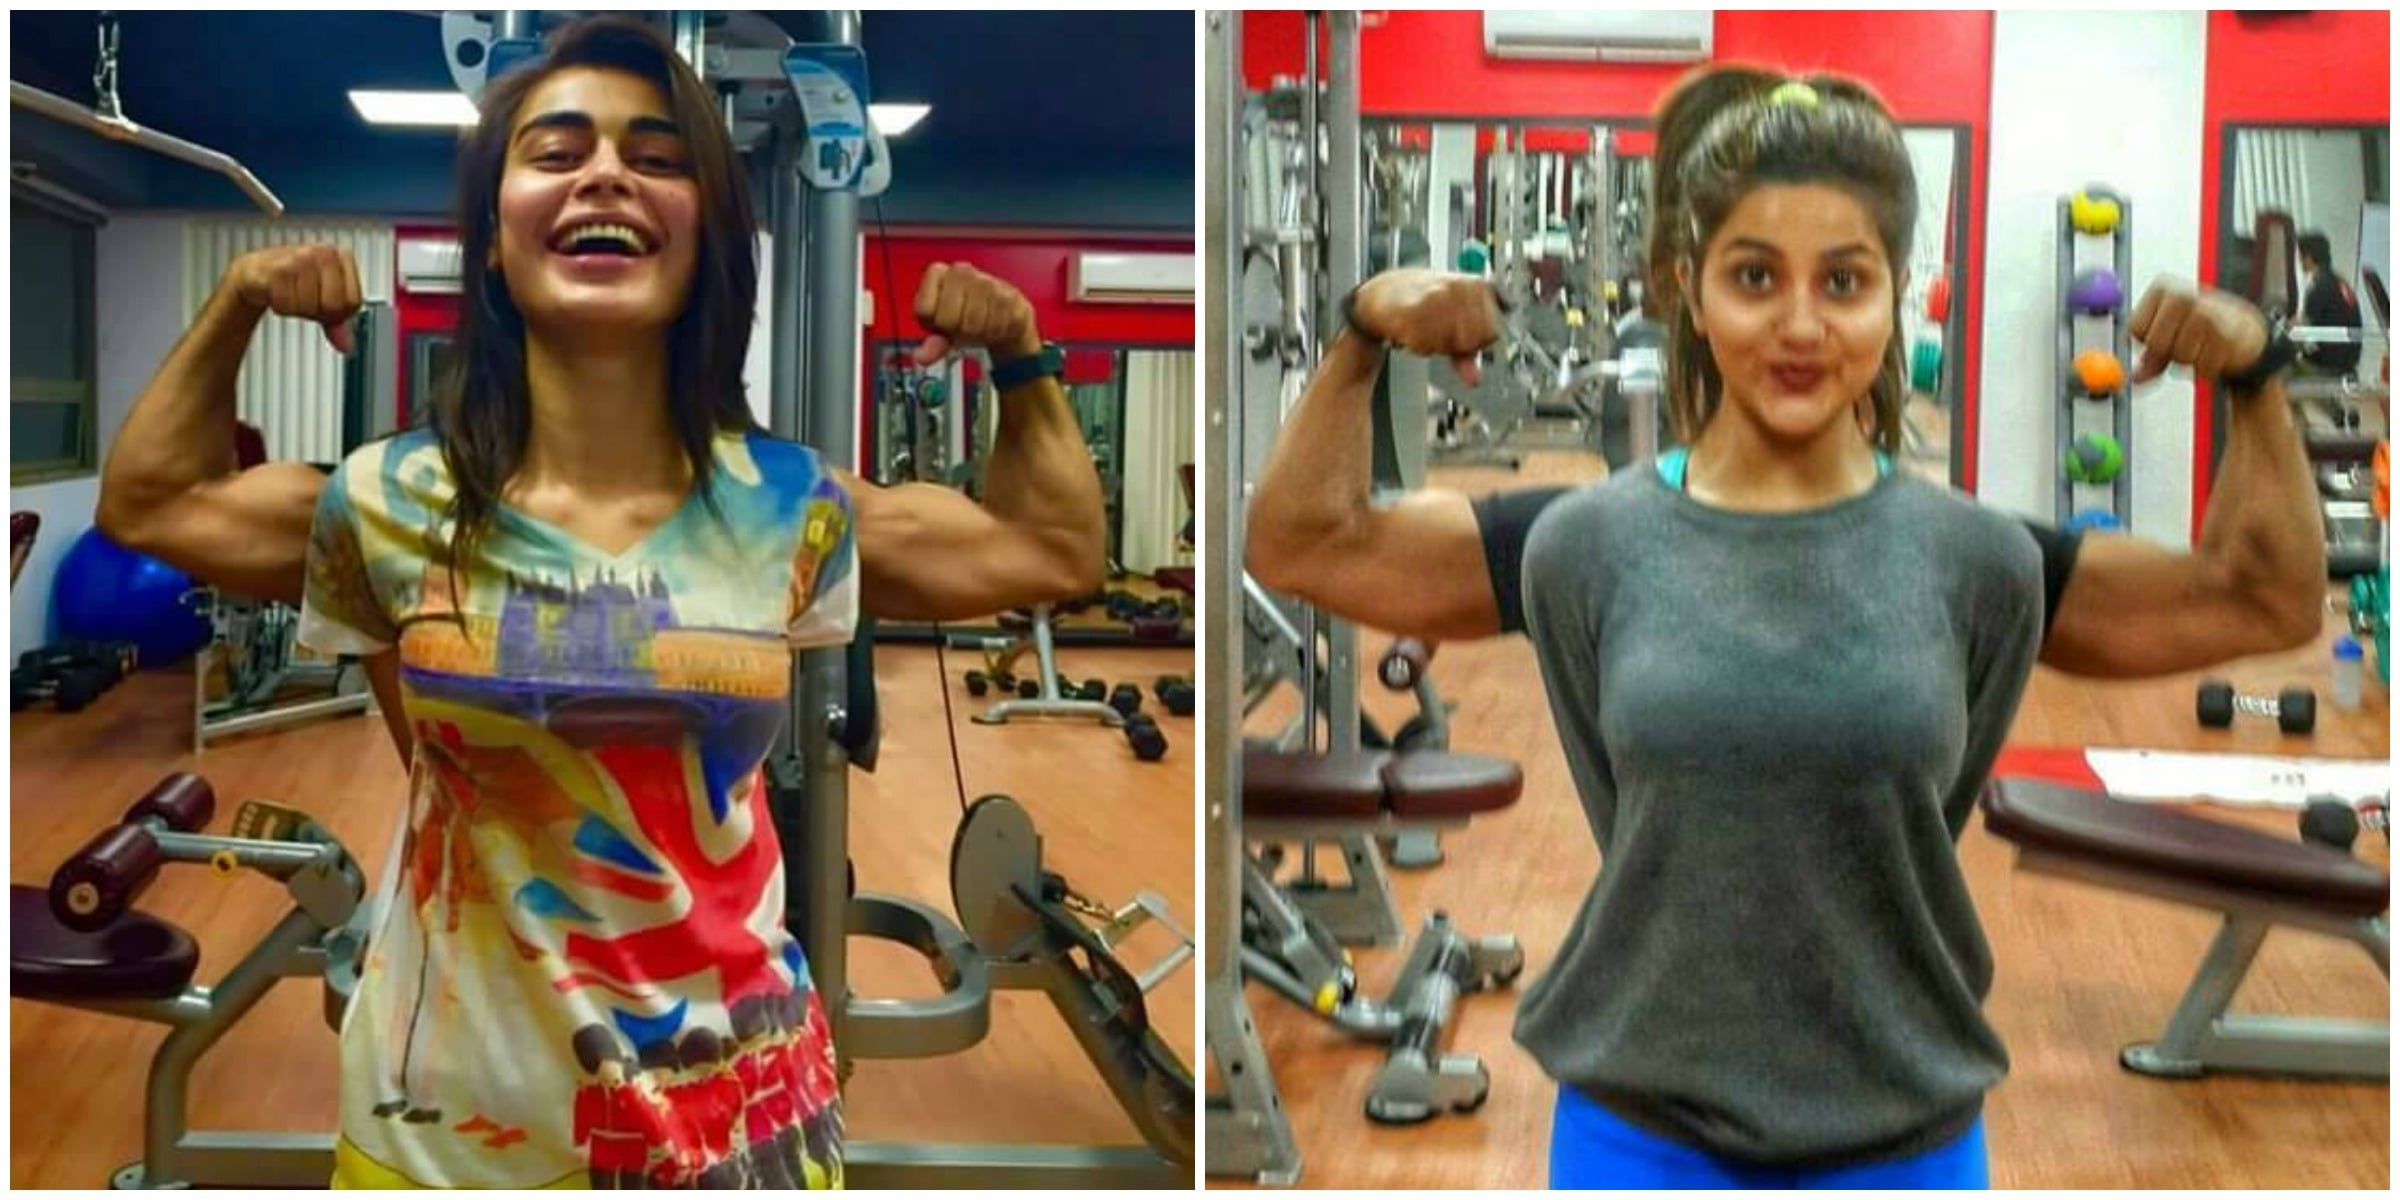 Sadaf Kanwal and Sohai Ali Abro good off in their downtime at the gym - Photos courtesy Rizwan Noor